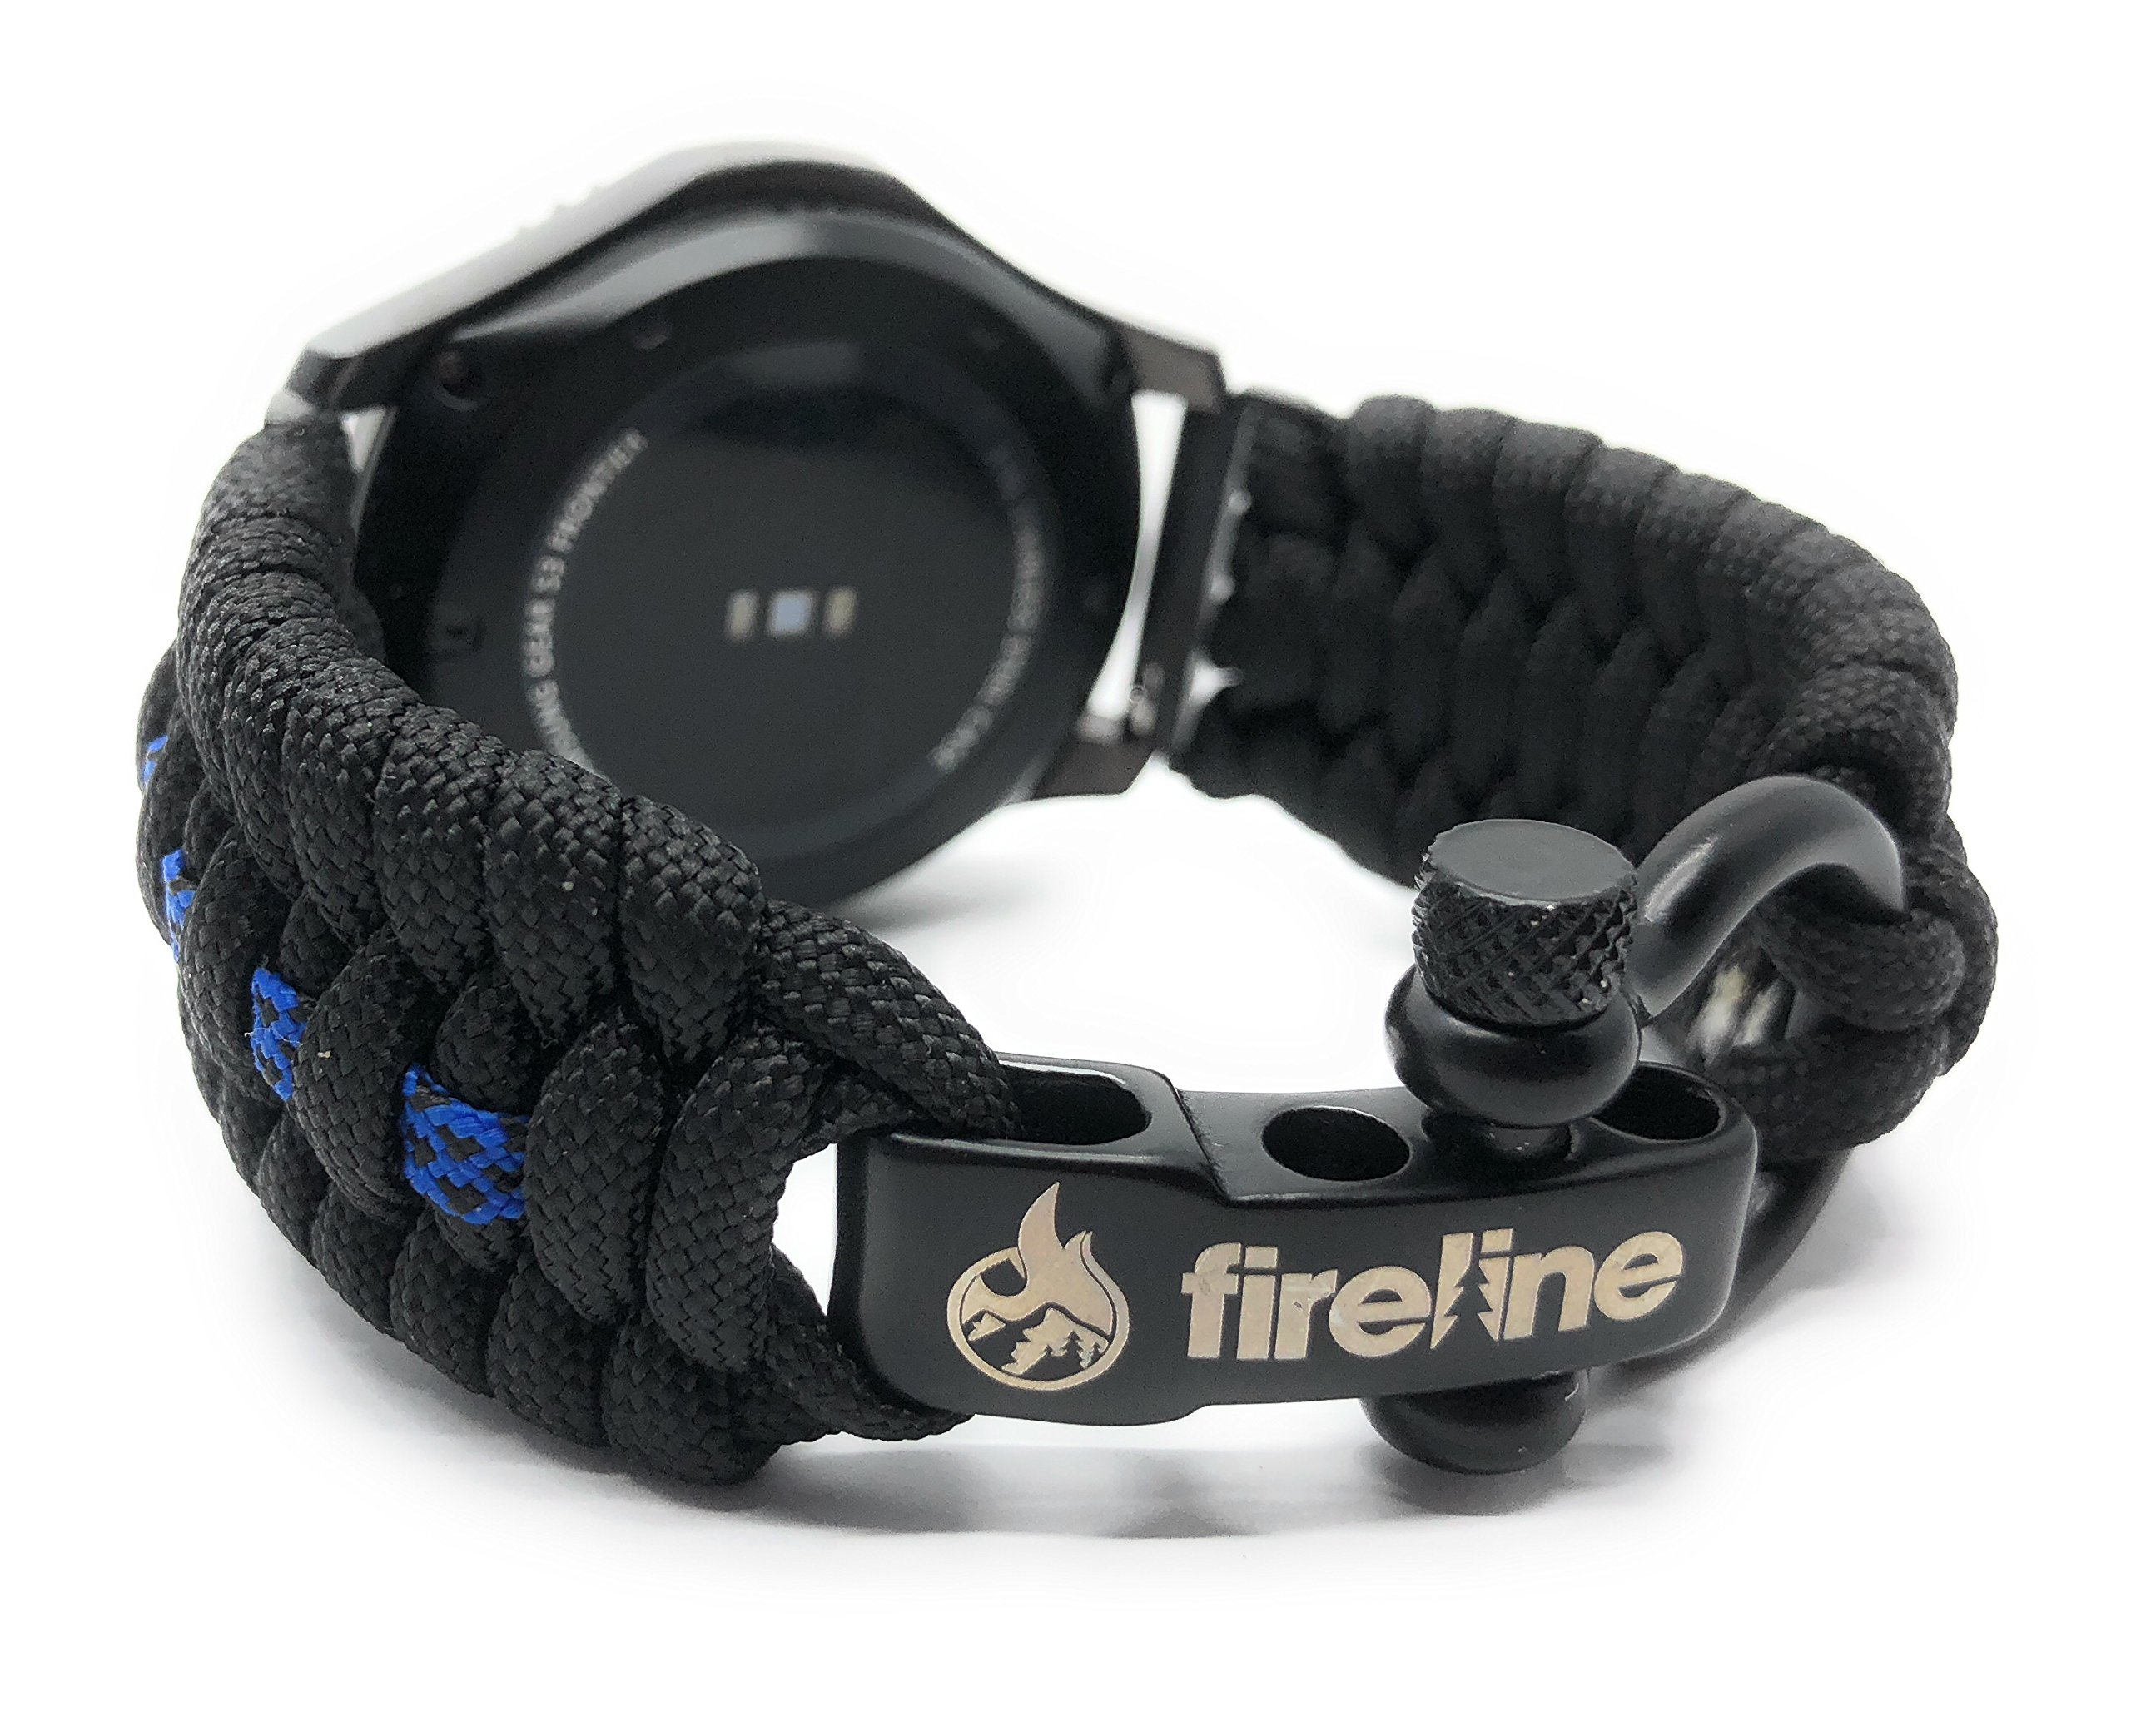 FireLine 22mm Paracord Watchband Tactical Band for Emergency and Survival | Firefighter Owned | Stainless Steel | Fits Samsung Gear S3 (Thin Blue Line, Large)